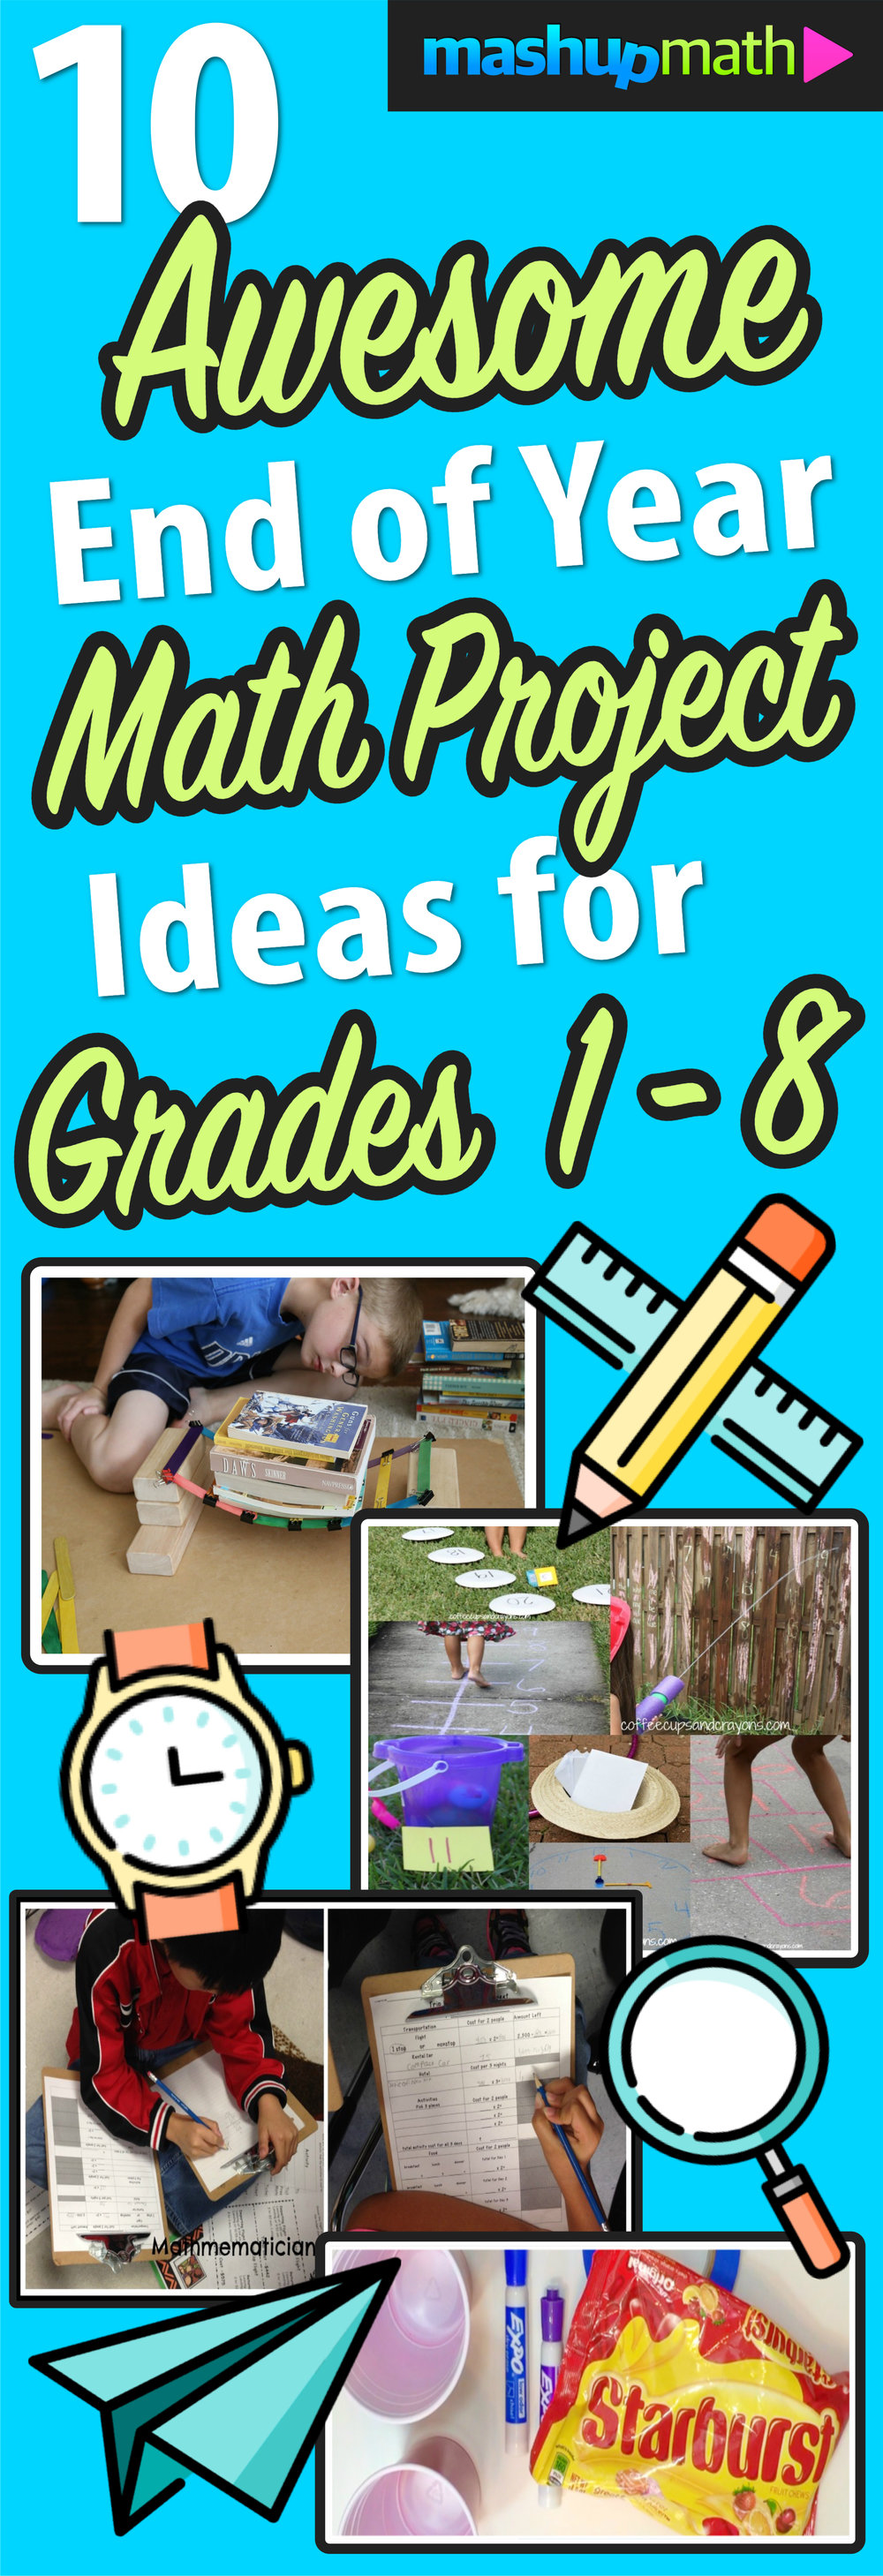 10 Awesome End Of Year Math Project Ideas Mashup Math